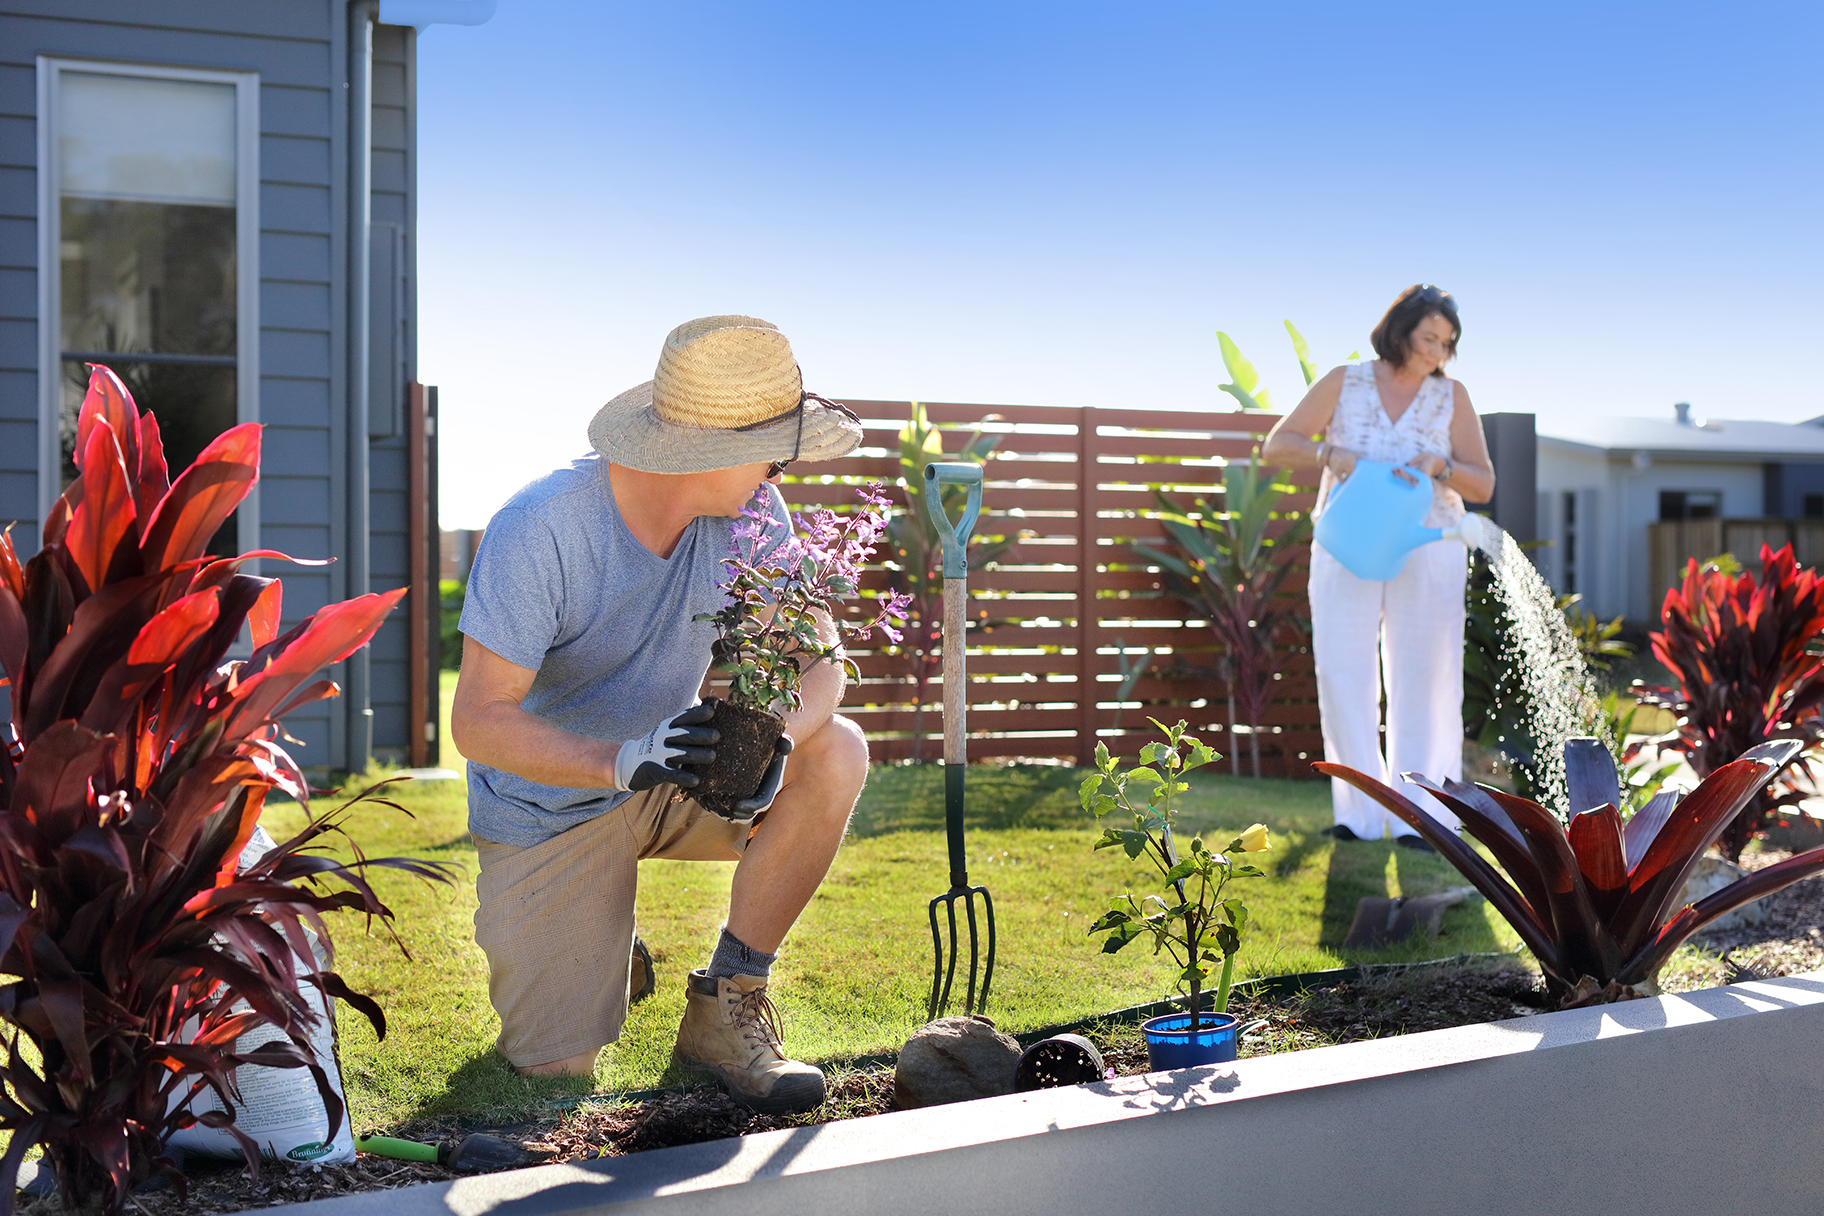 Man planting flowers and woman watering garden in residential garden